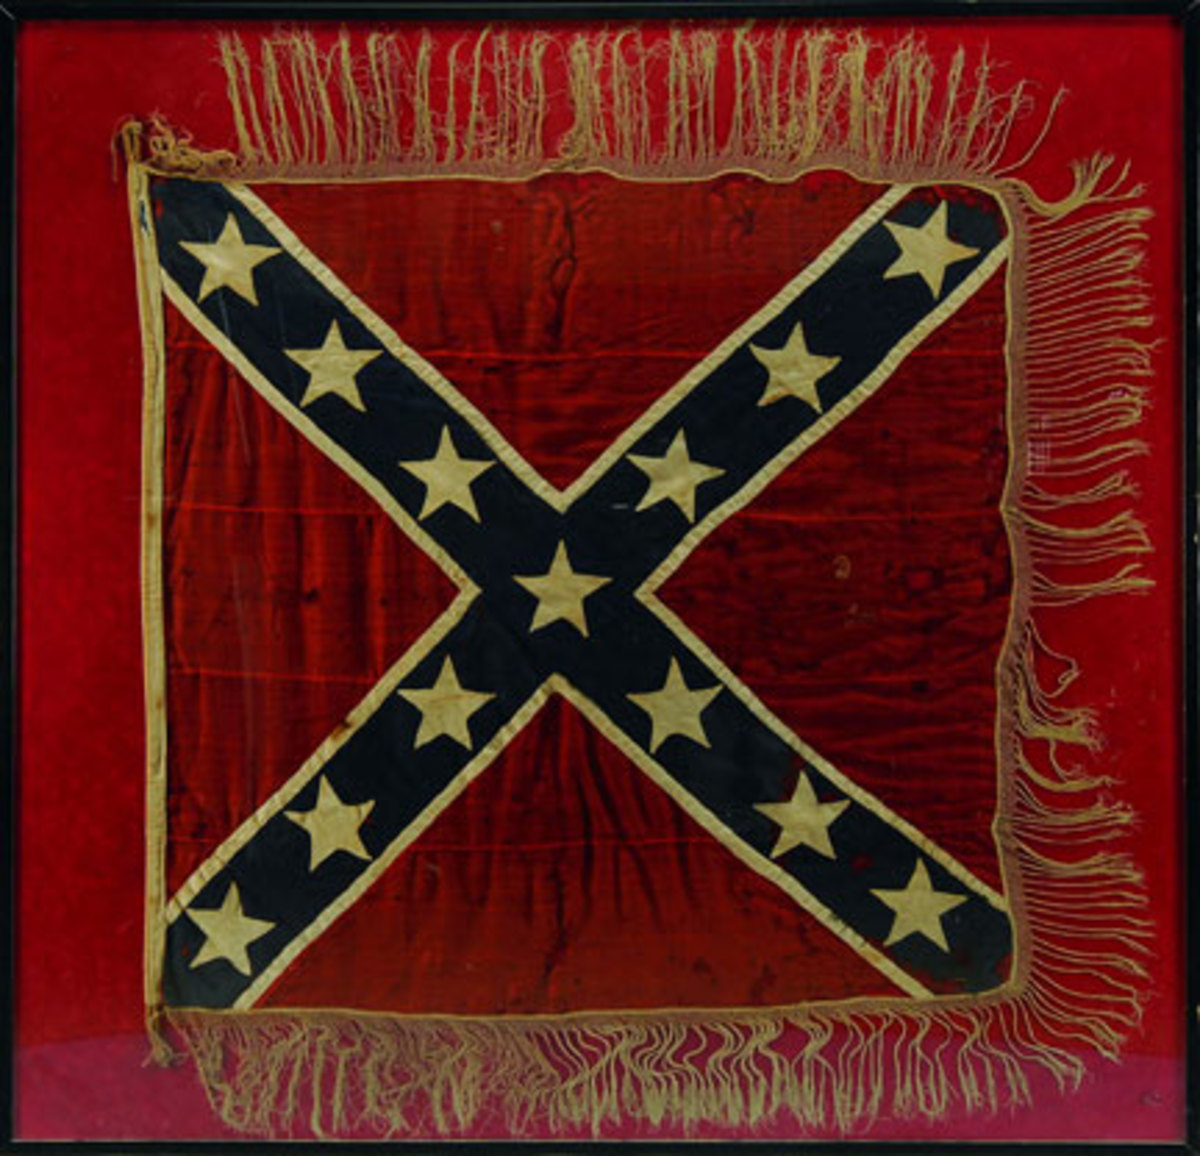 Confederate Battle Flag in the Army of No. VA design. SOLD $120,750